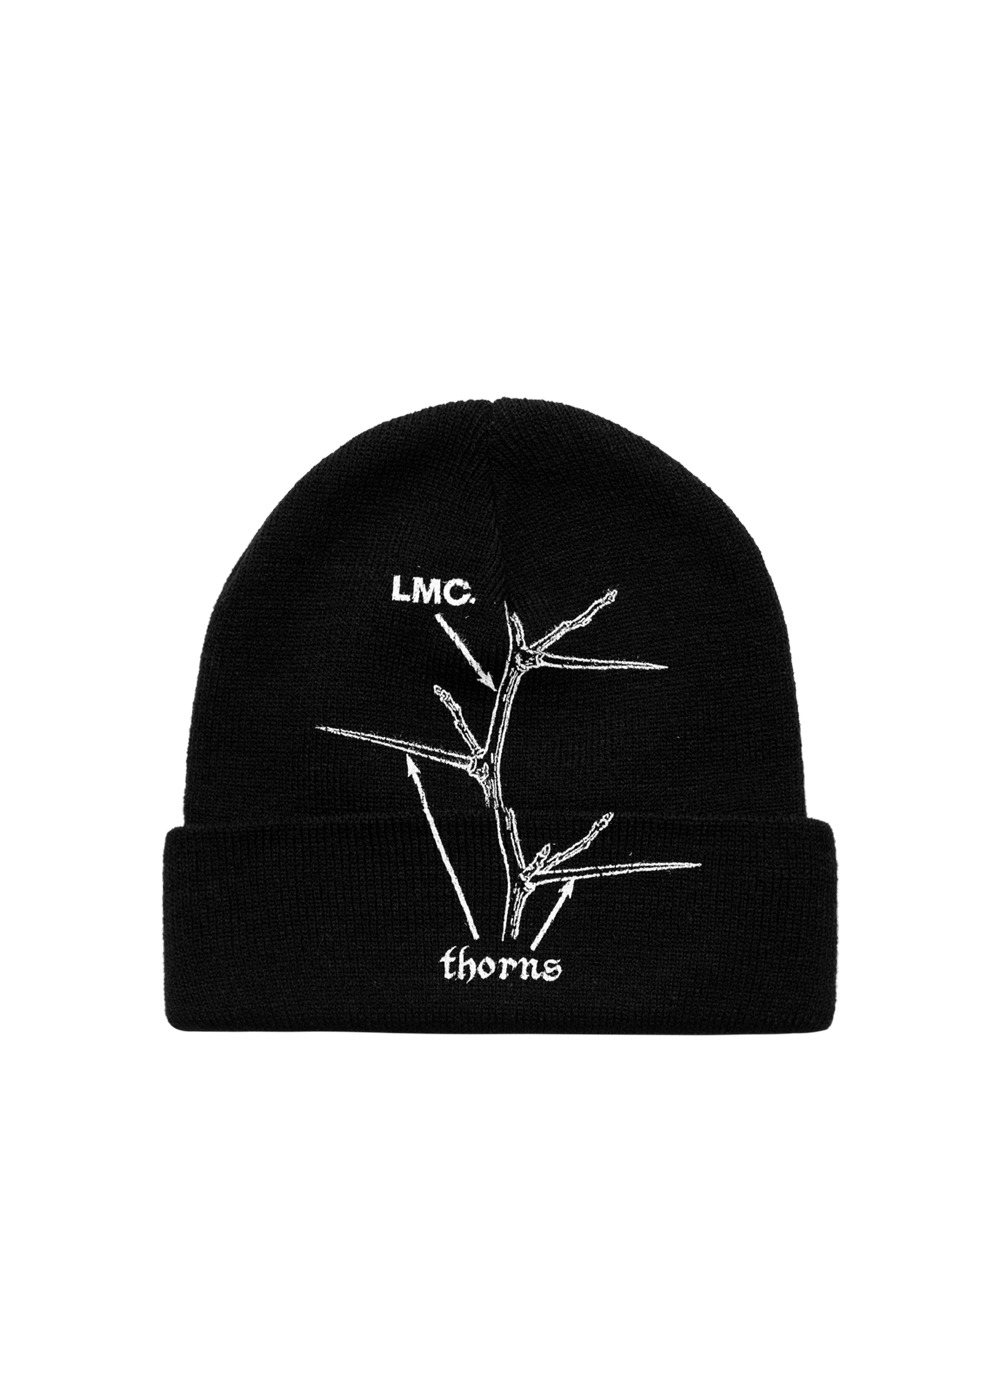 LMC THORNS GUIDE BEANIE black